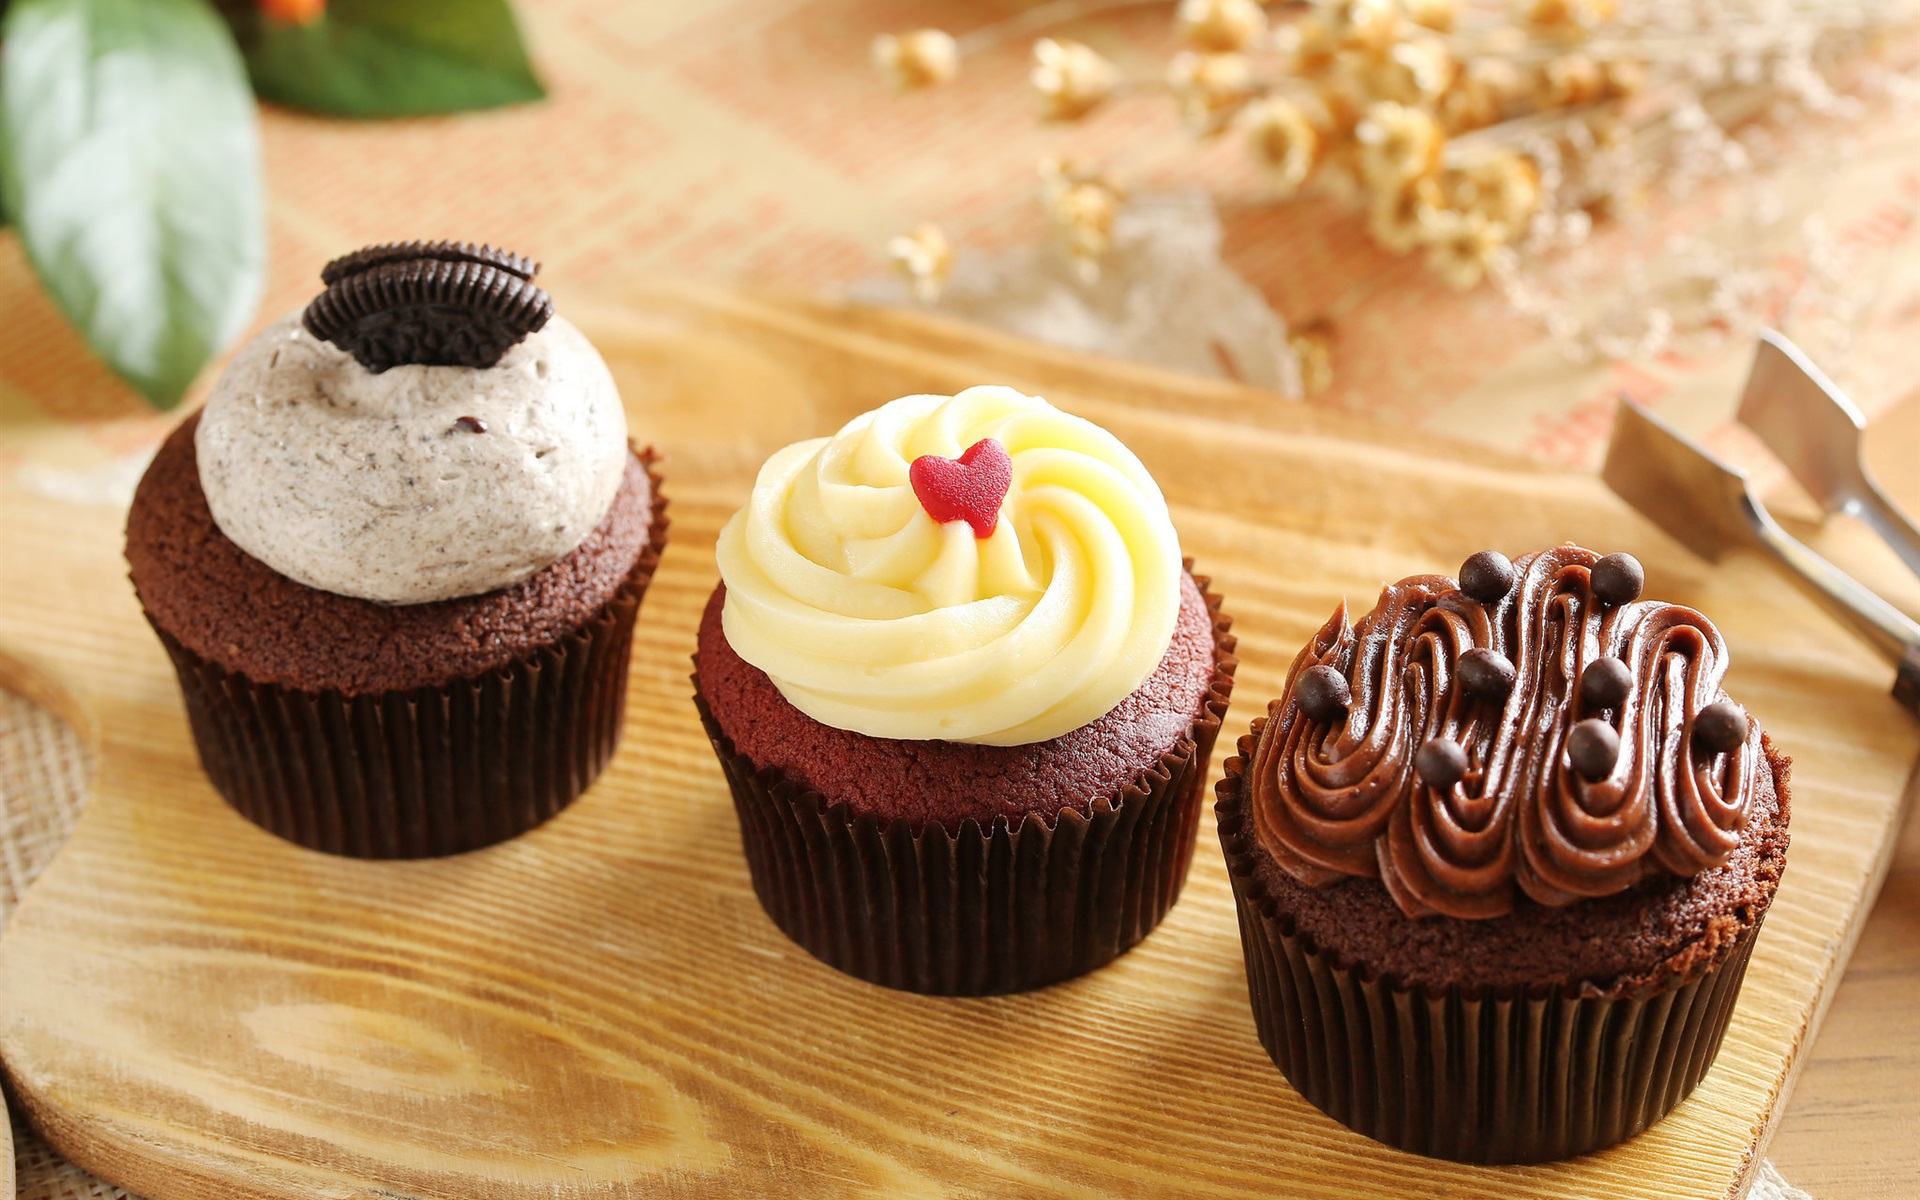 wallpaper chocolate cupcakes, muffins, cream 1920x1200 hd picture, image